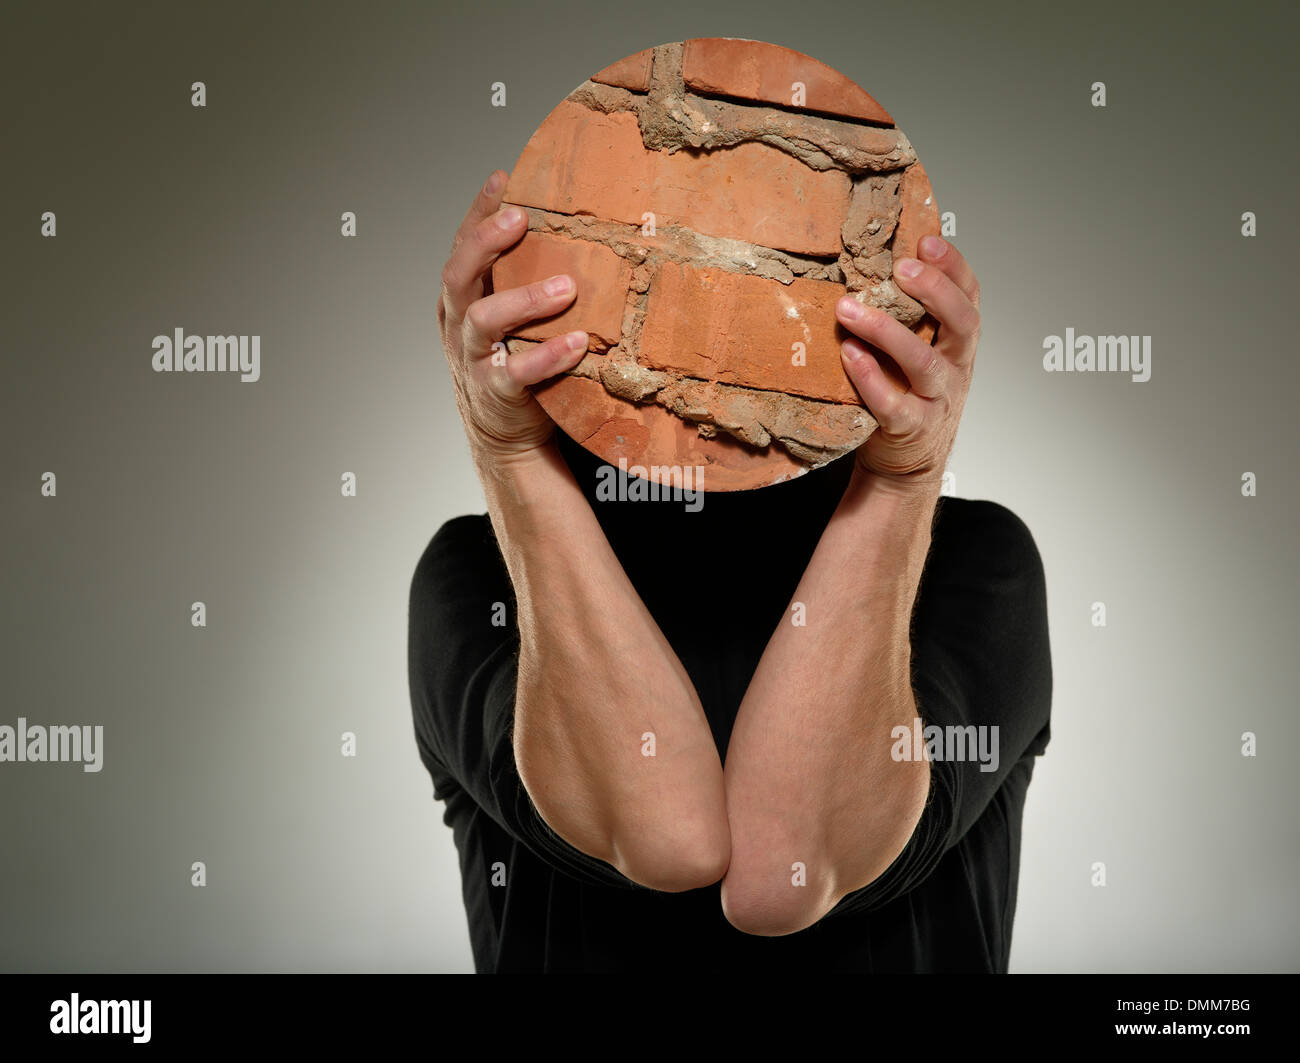 Man hold on piece of rounded brick wall over his face. Obsession  concept. - Stock Image